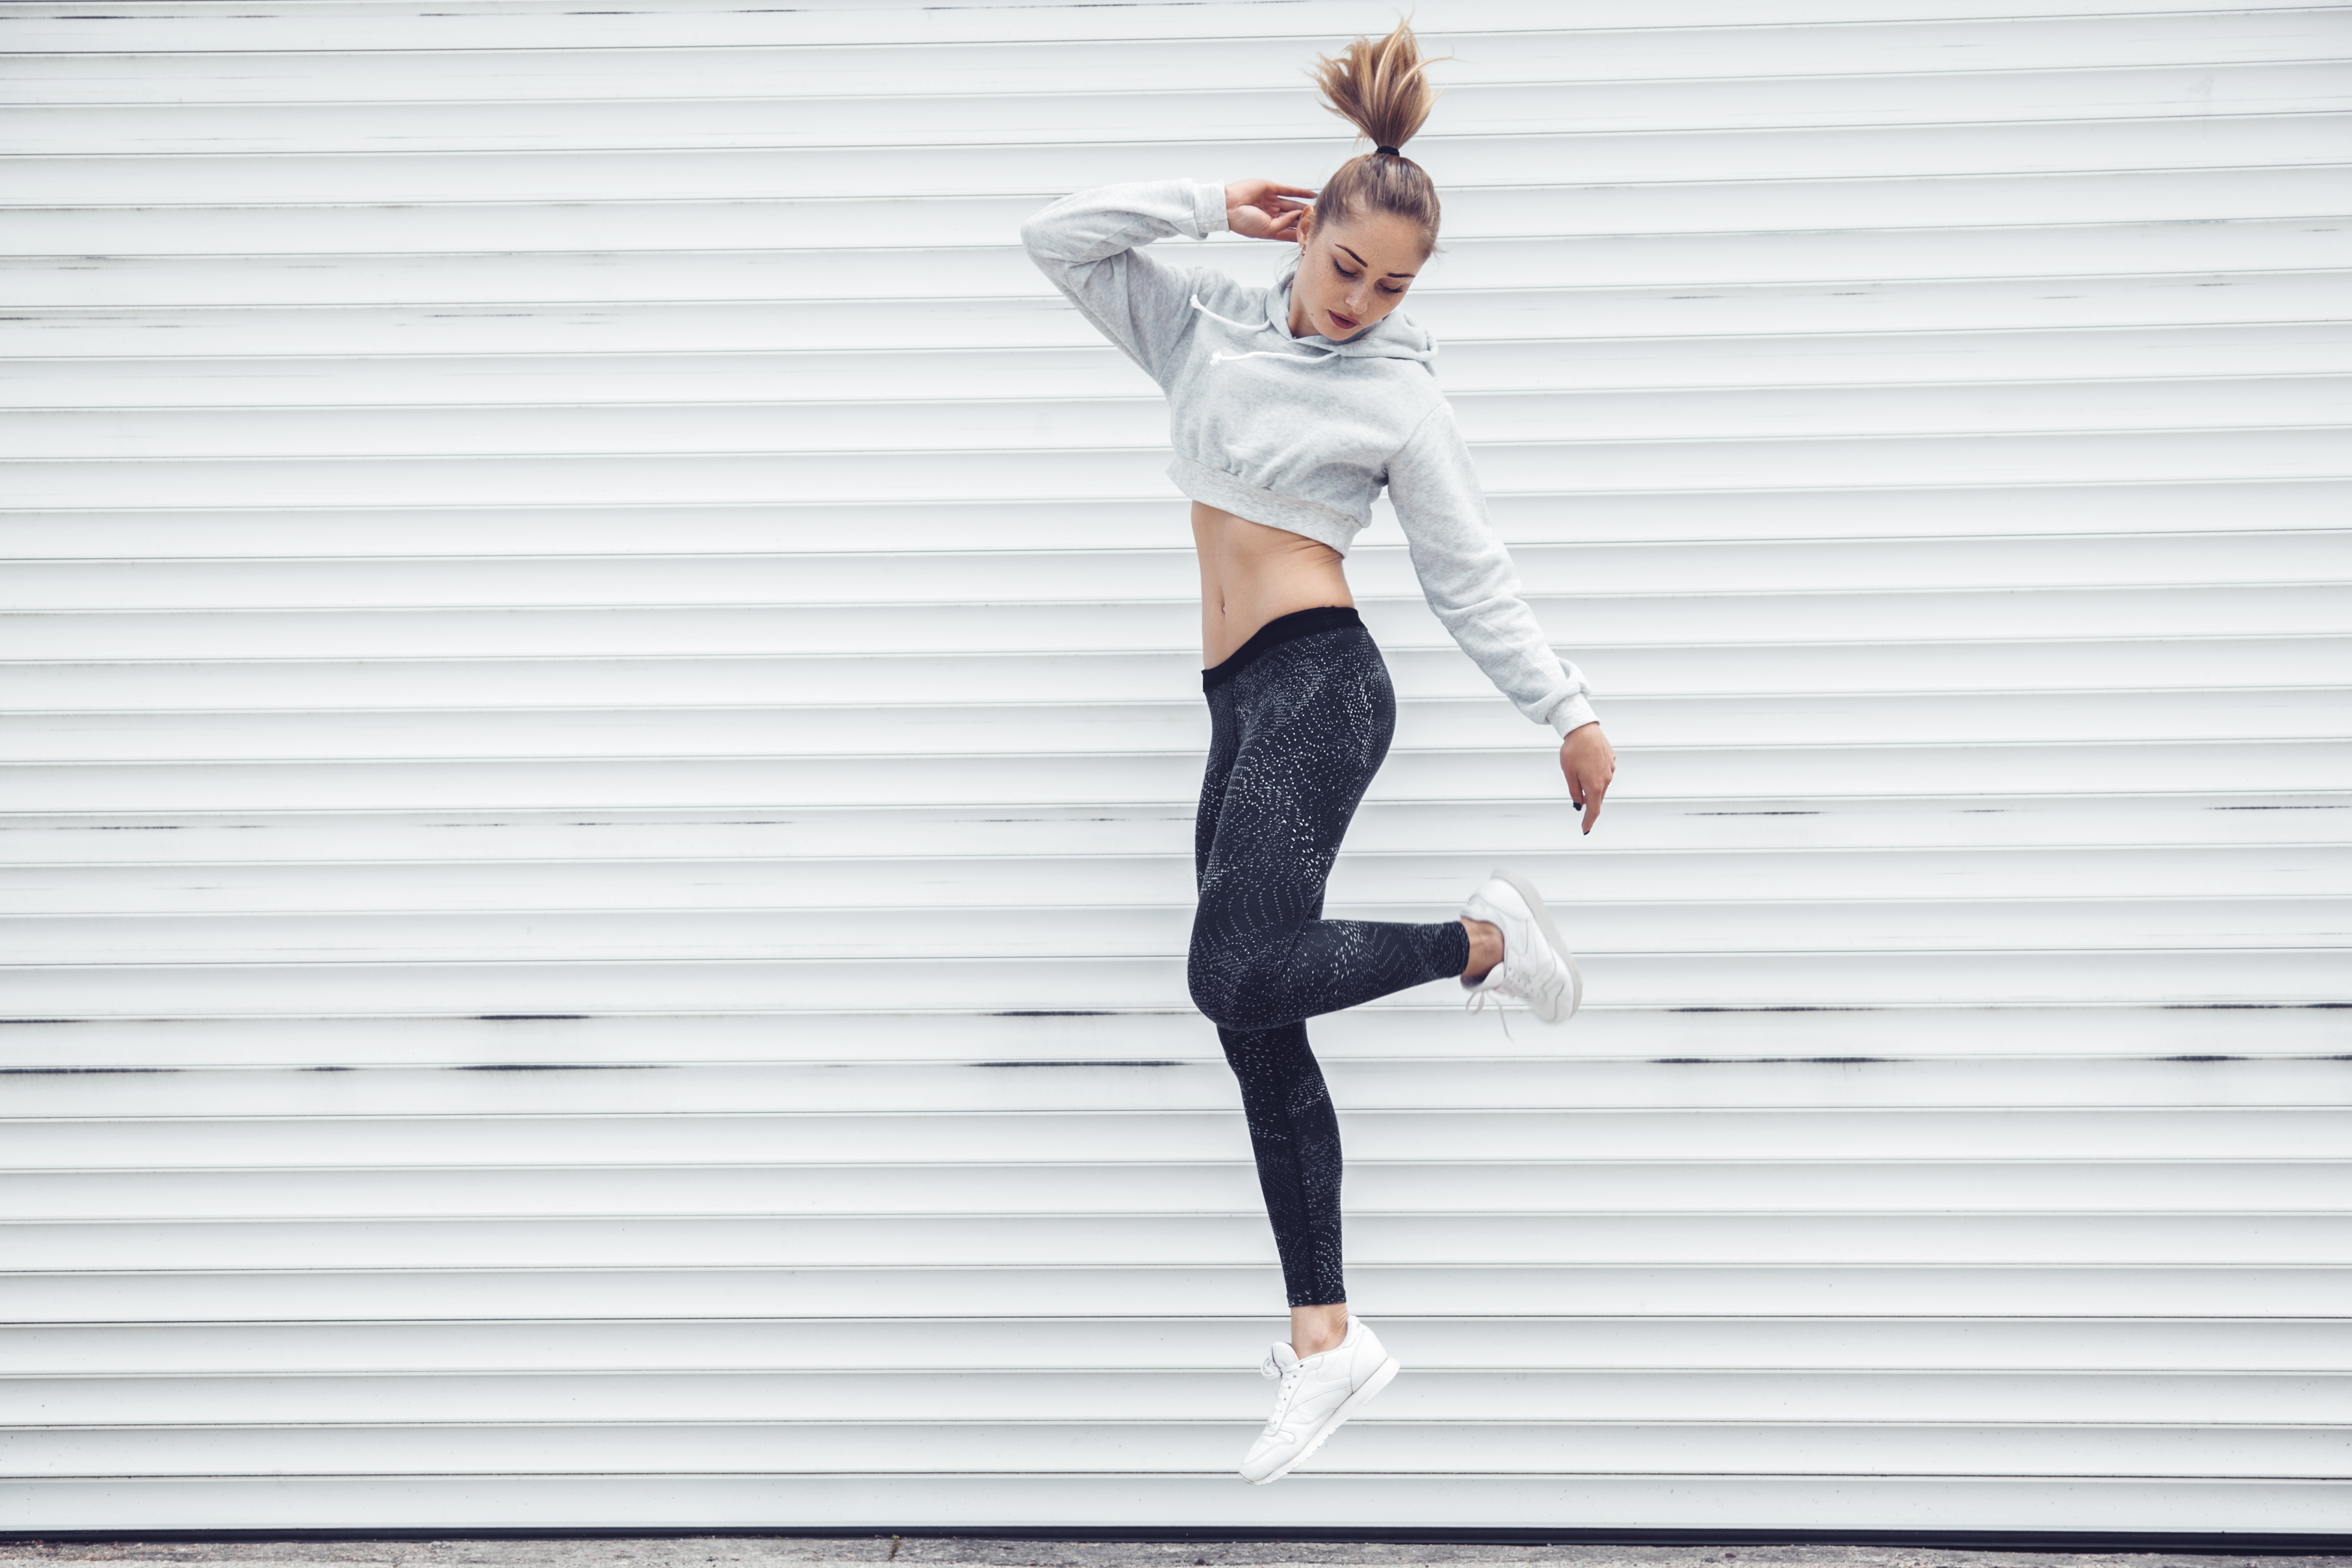 young woman in yoga pants and sweatshirt jumping